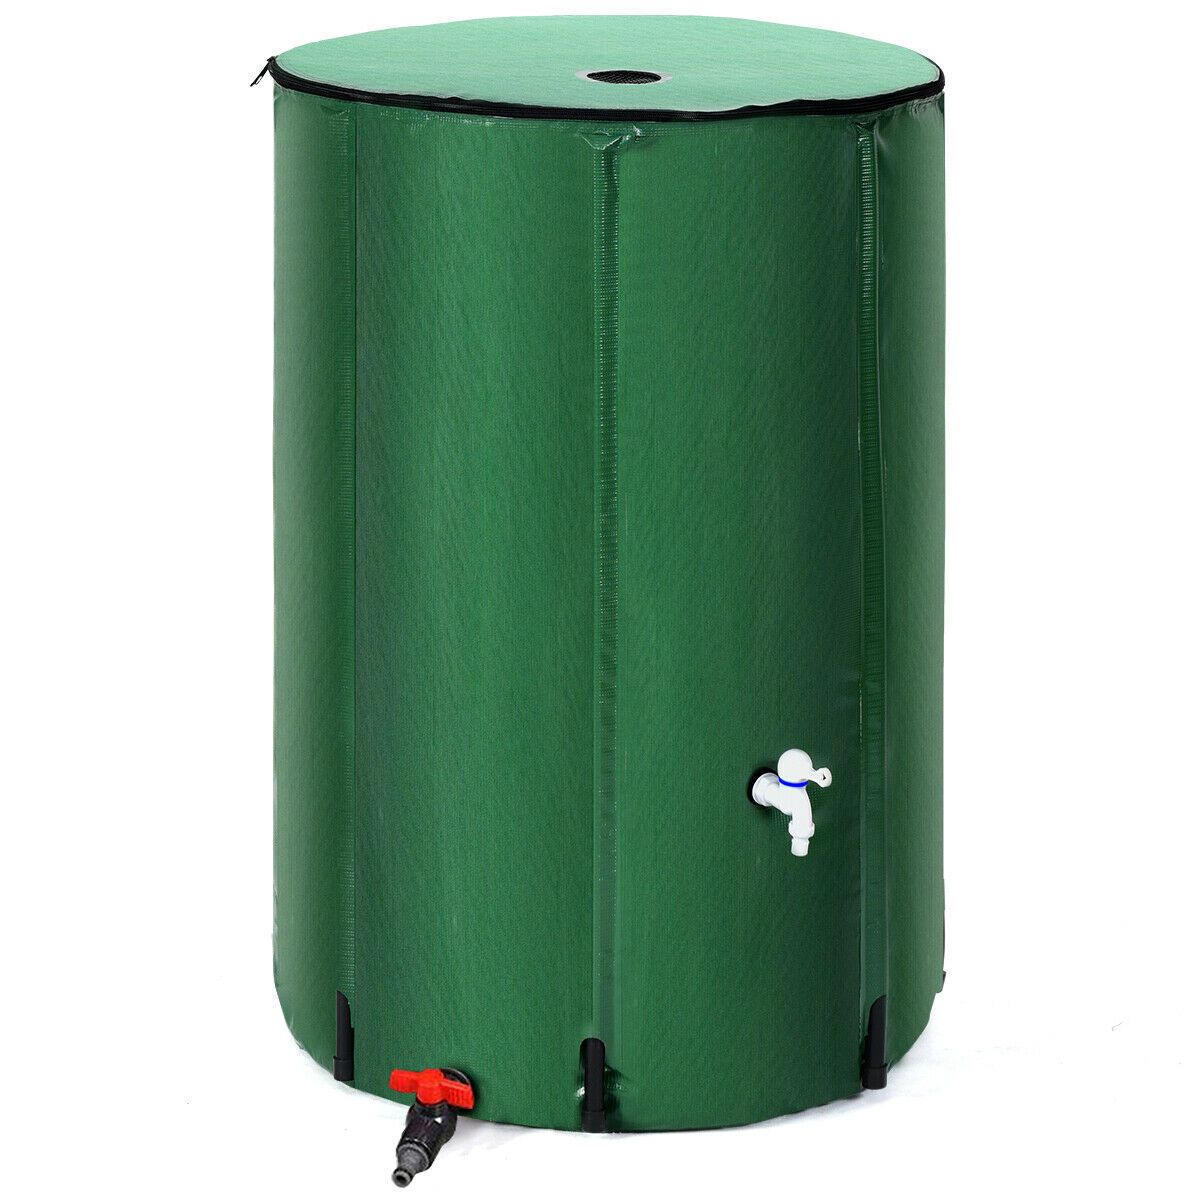 100 Gallon Portable Rain Barrel Water Collector Tank With Spigot Filter Rain Barrel Water Storage Containers Water Storage